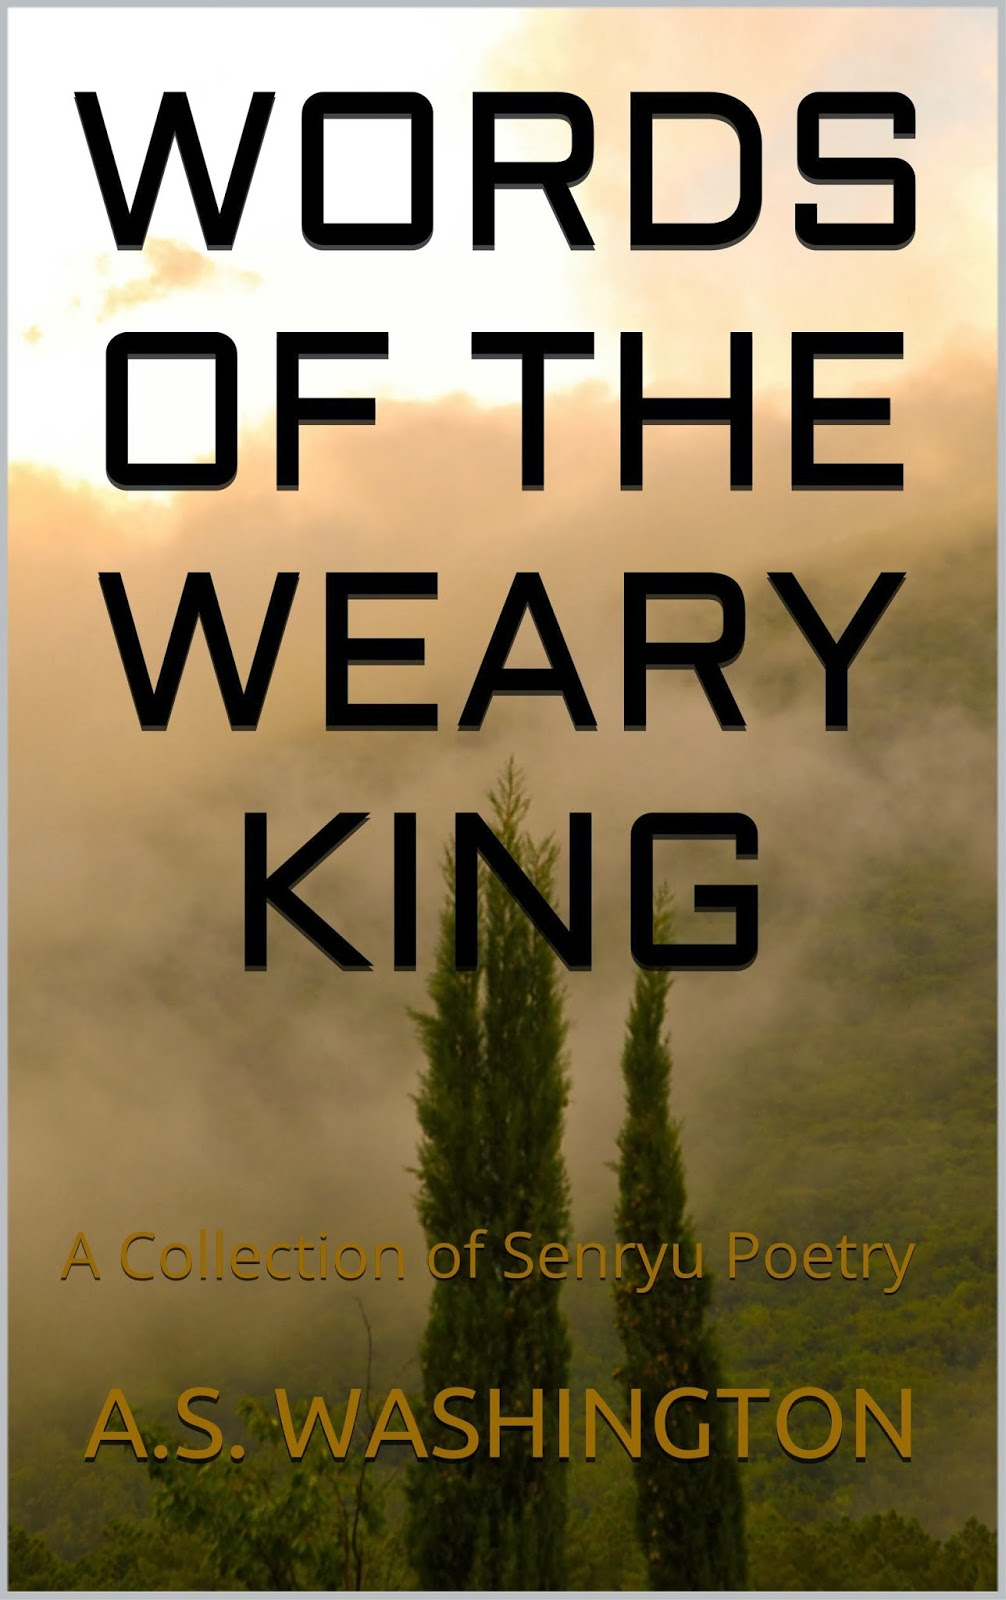 http://www.amazon.com/Words-Weary-King-S-Washington-ebook/dp/B00G6O5U7M/ref=sr_1_1?s=books&ie=UTF8&qid=1399899638&sr=1-1&keywords=Words+of+the+Weary+King